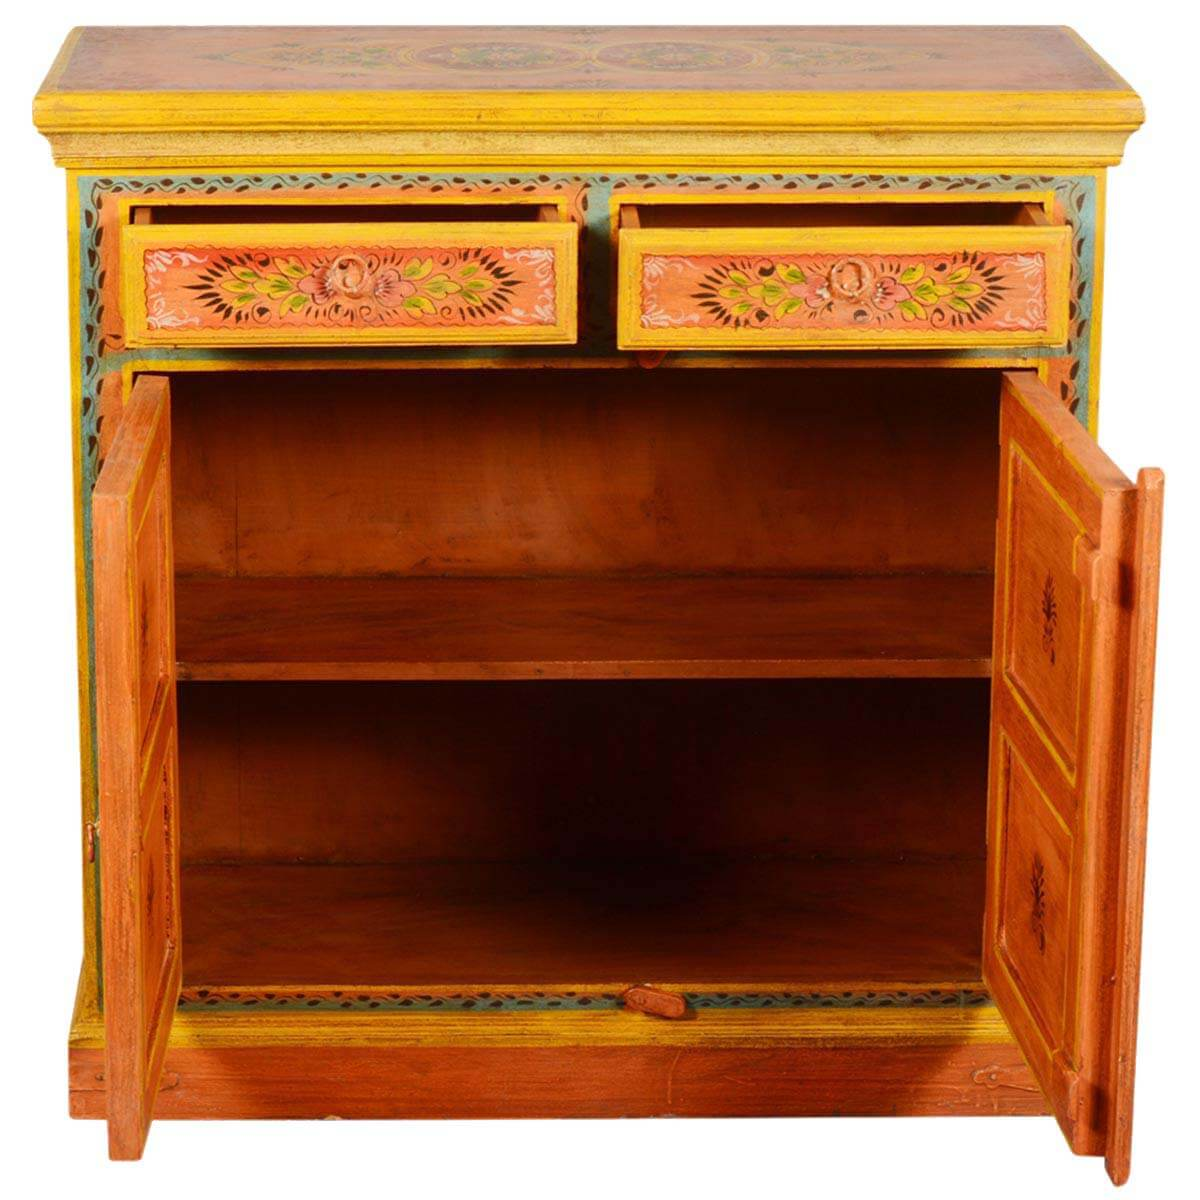 Painted Wooden Sideboard ~ Sun garden orange hand painted mango wood drawer storage